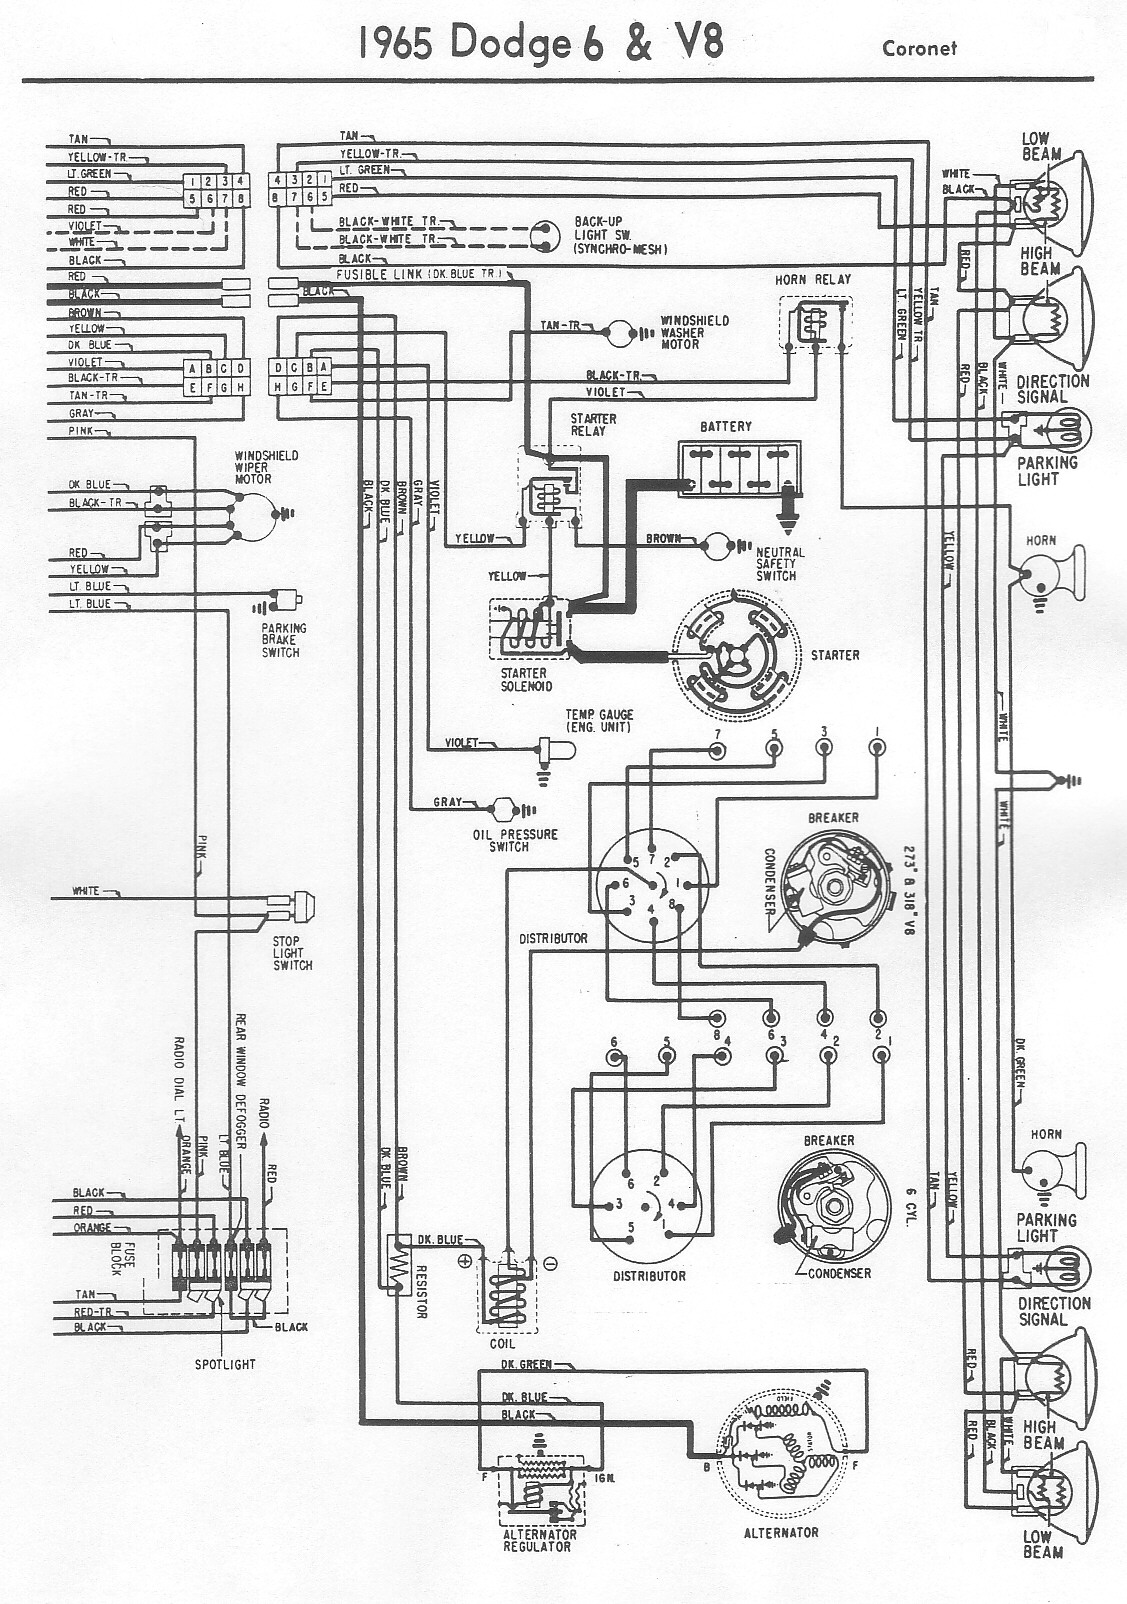 76 Chrysler Ignition Diagram Trusted Wiring. Bzerob Technical Articles Library Wiring Section Ignition Coil Diagram 76 Chrysler. Wiring. 76 Camaro Wiring Diagram At Scoala.co